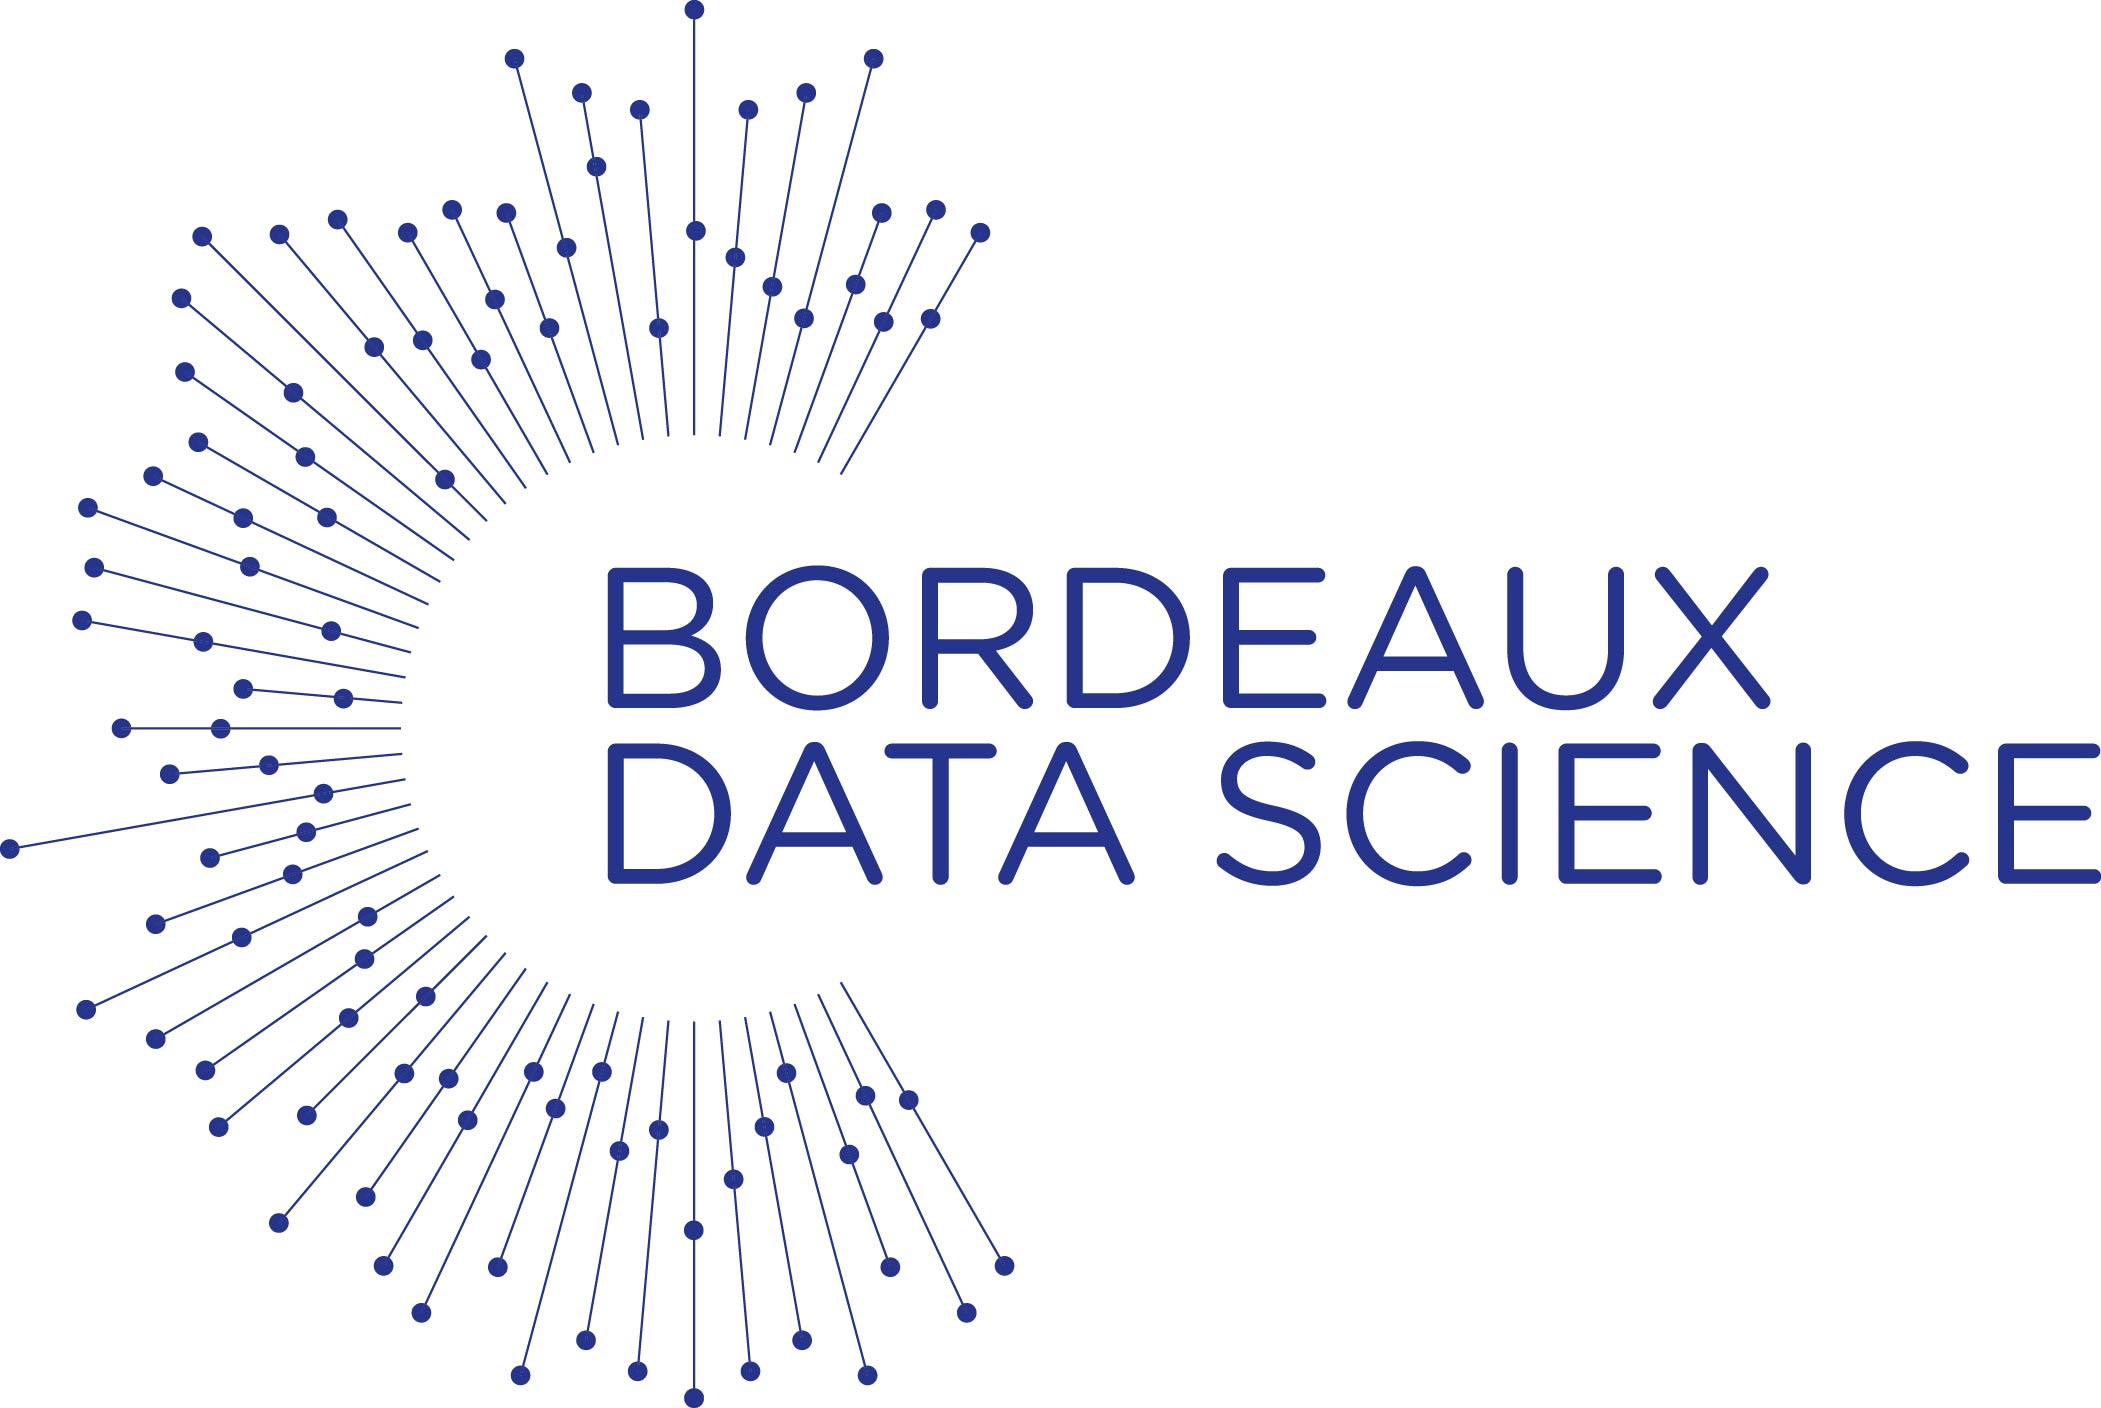 Bordeaux Data Science